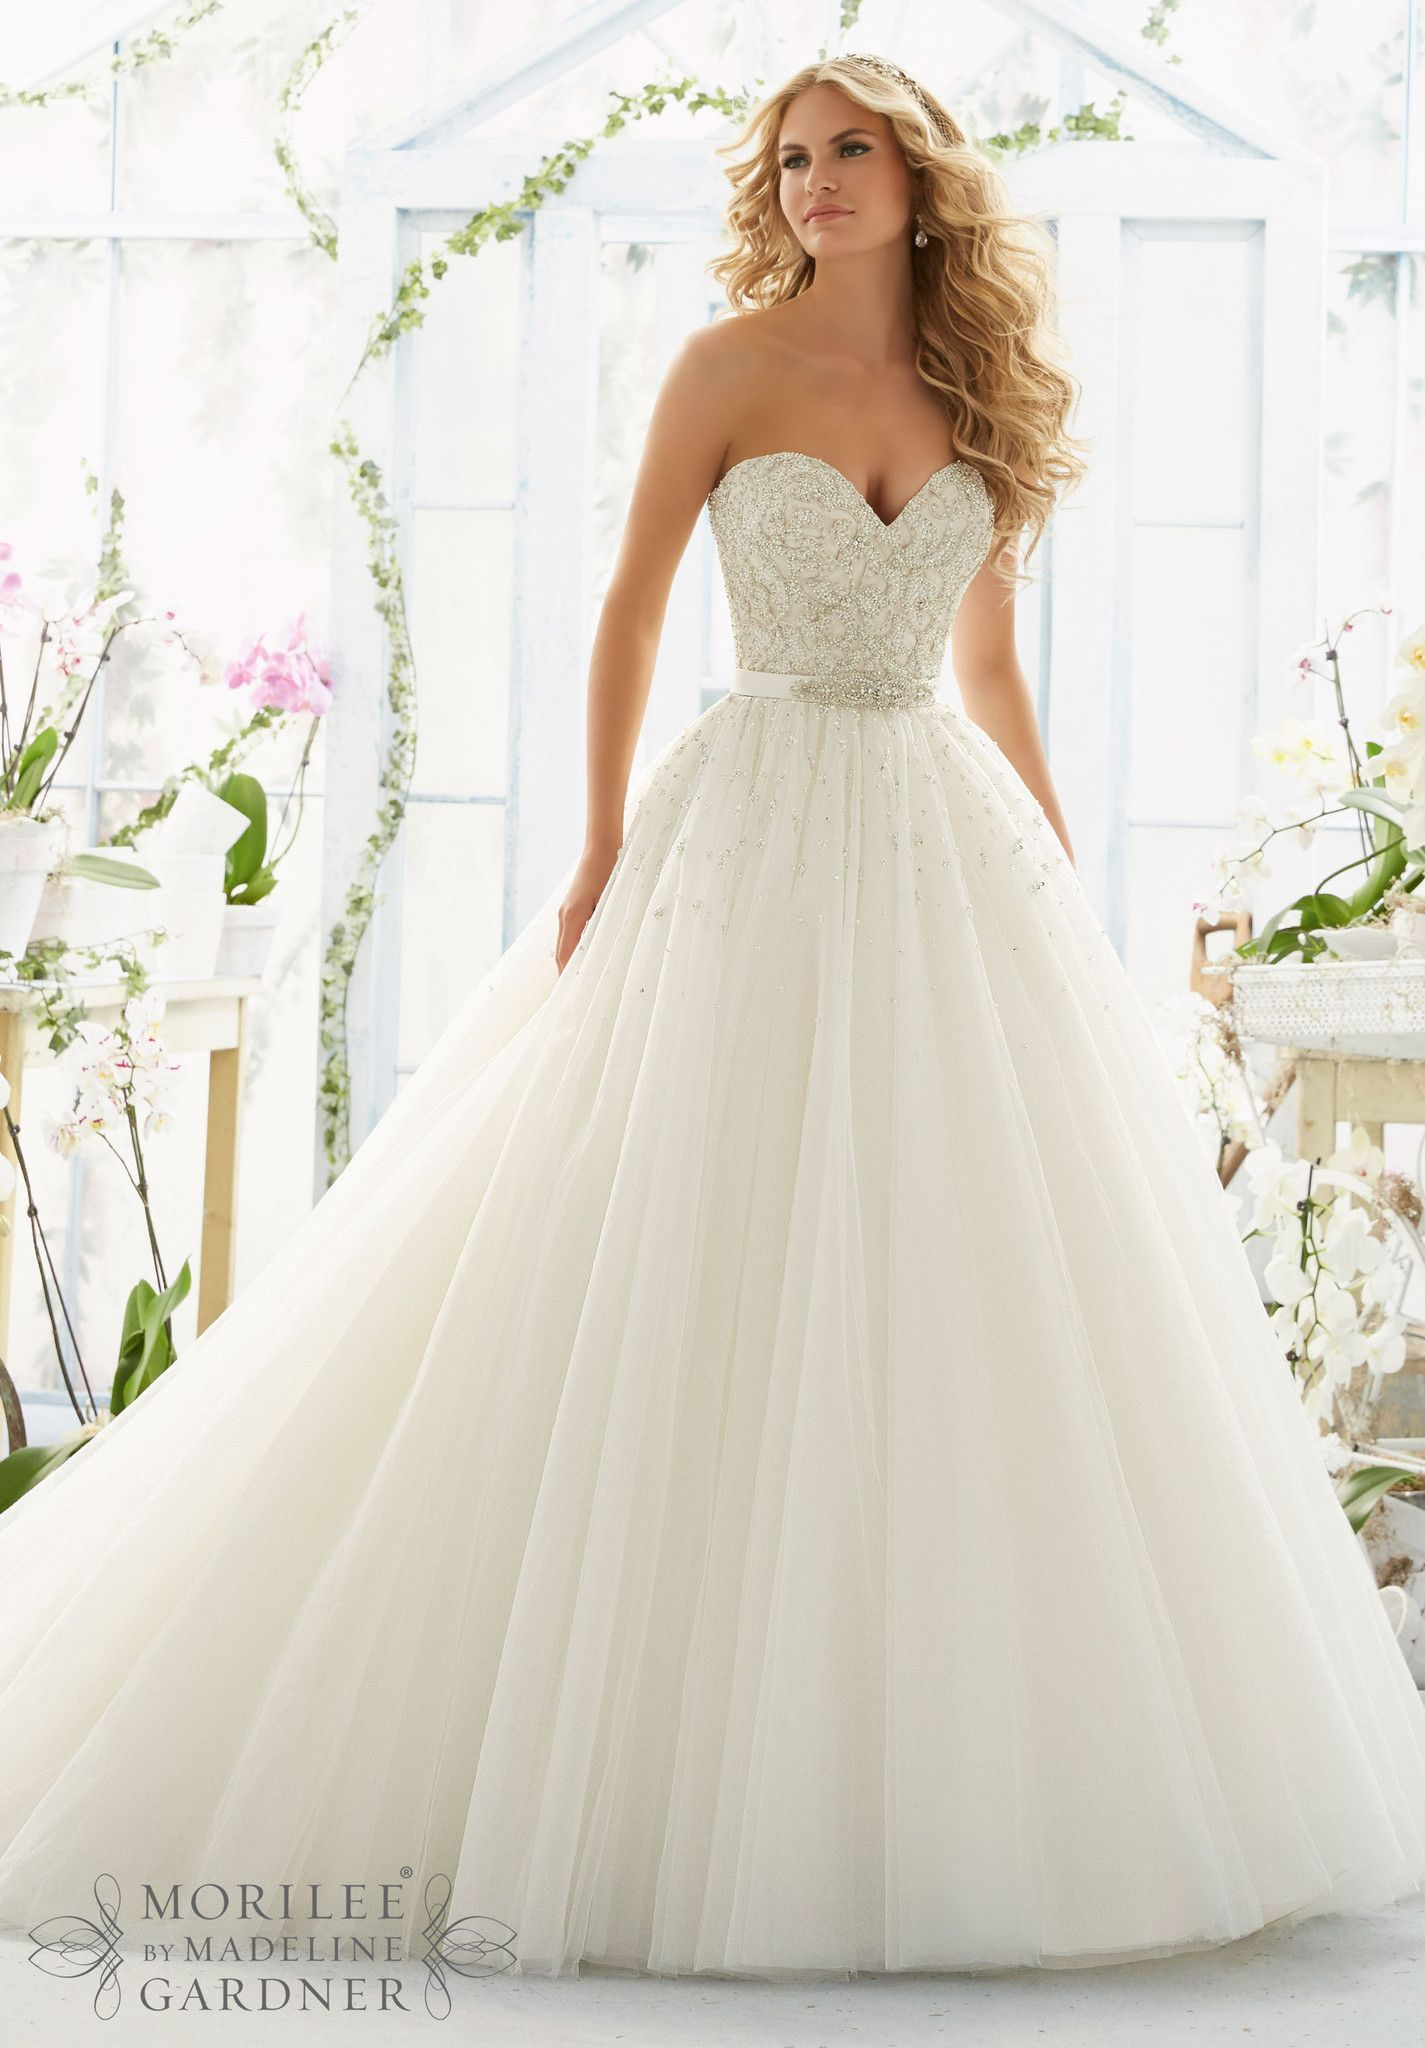 Mori Lee Pearl And Diamanté Beading On Laser Cut Embroidery Onto The Tulle Ball Gown Removable Beaded Satin Belt 11221